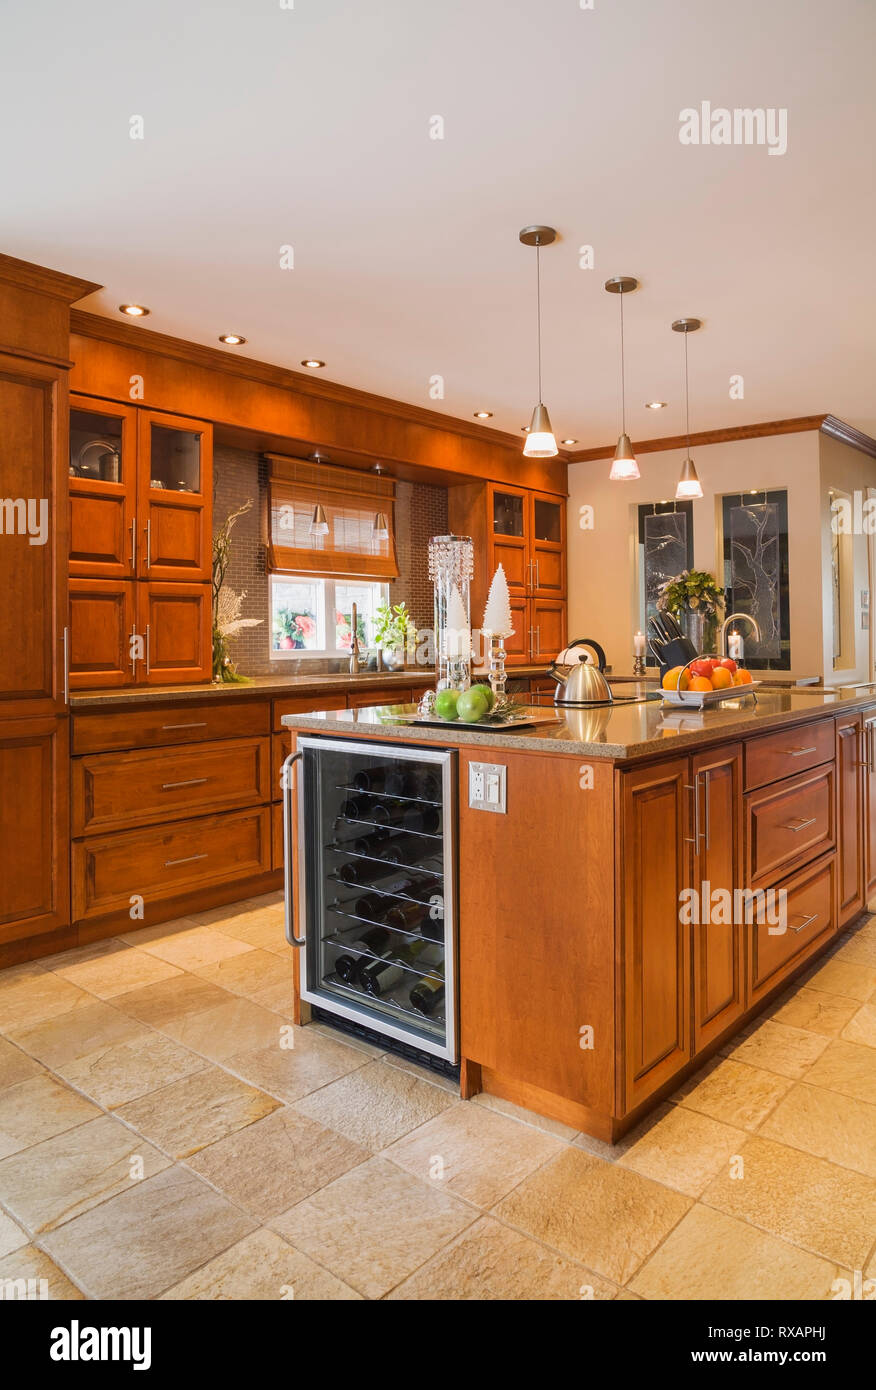 Cherrywood Cabinets And Island With Quartz Countertops In